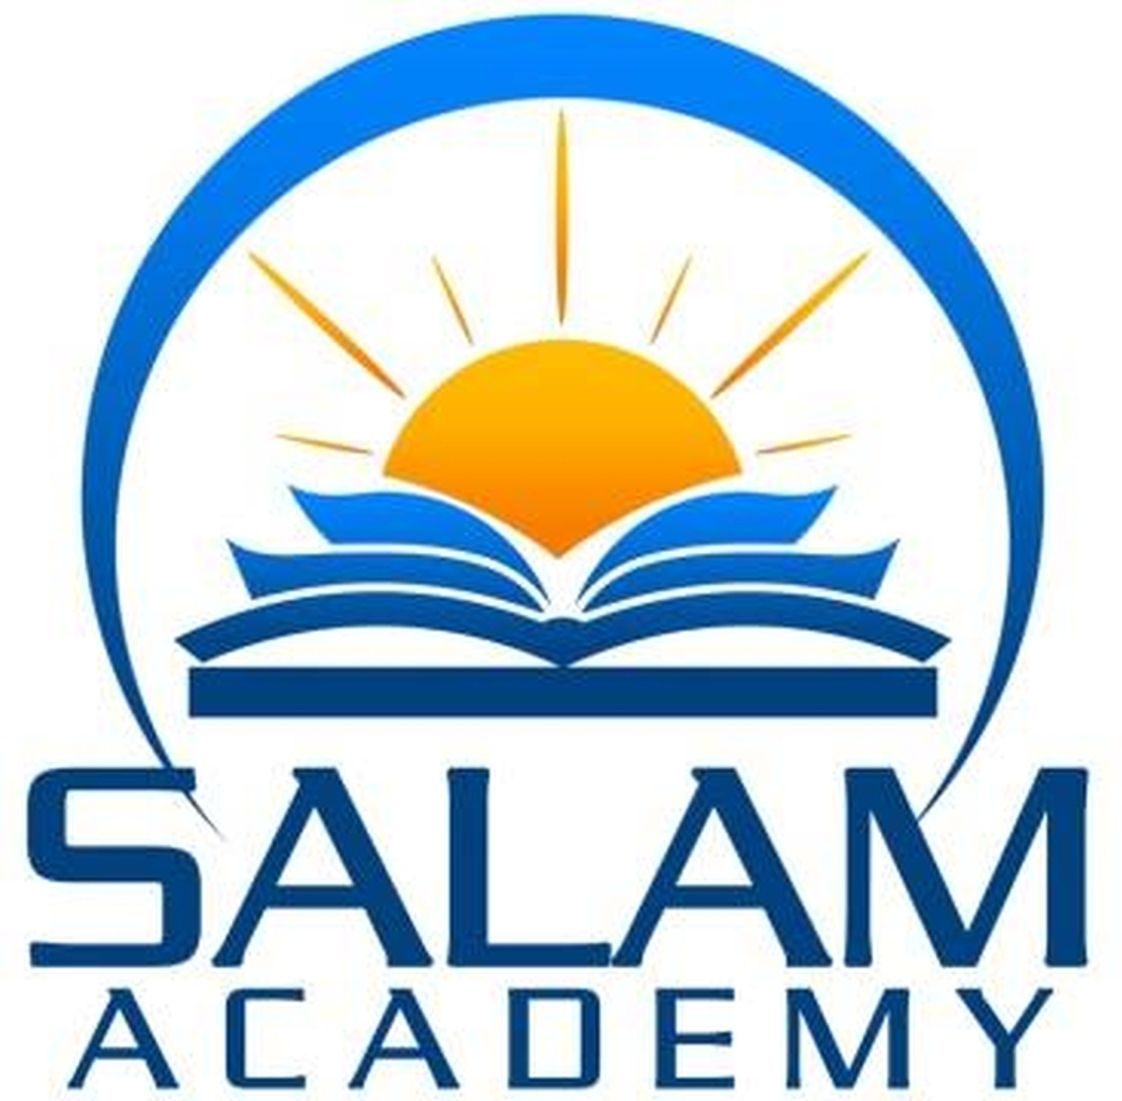 Salam Academy Photo #1 - Where Education Has No Limits!